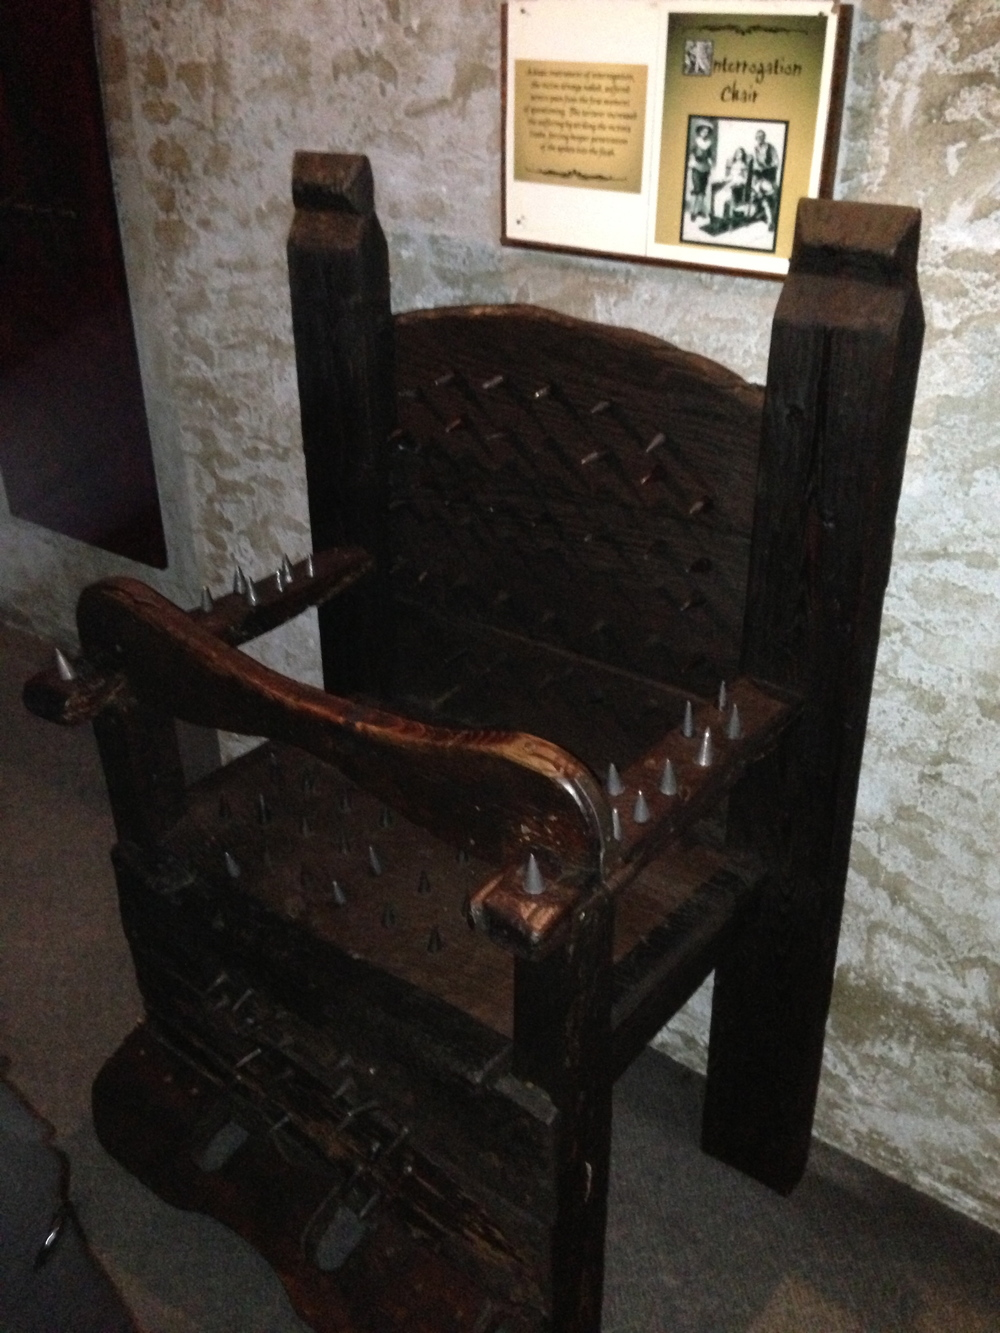 Spiked torture chair.